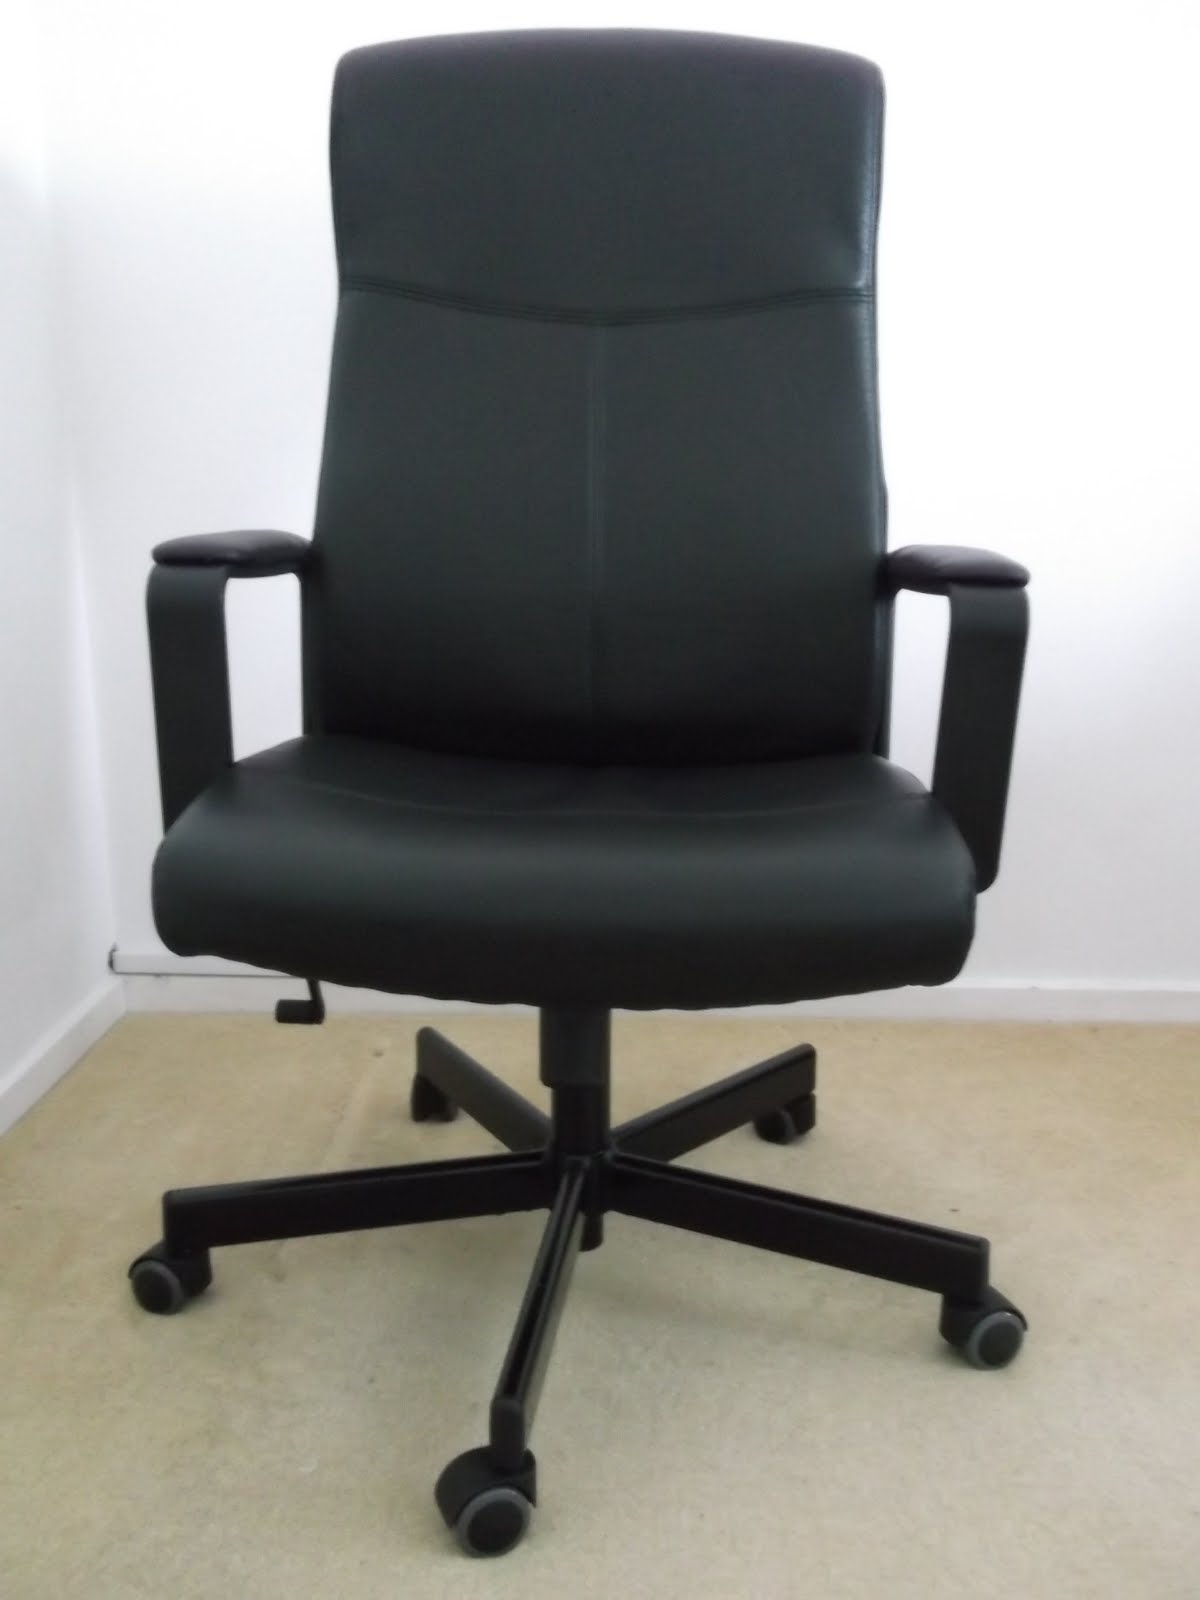 malcolm office chair. Ikea Malkolm Office Swivel Chair Malcolm